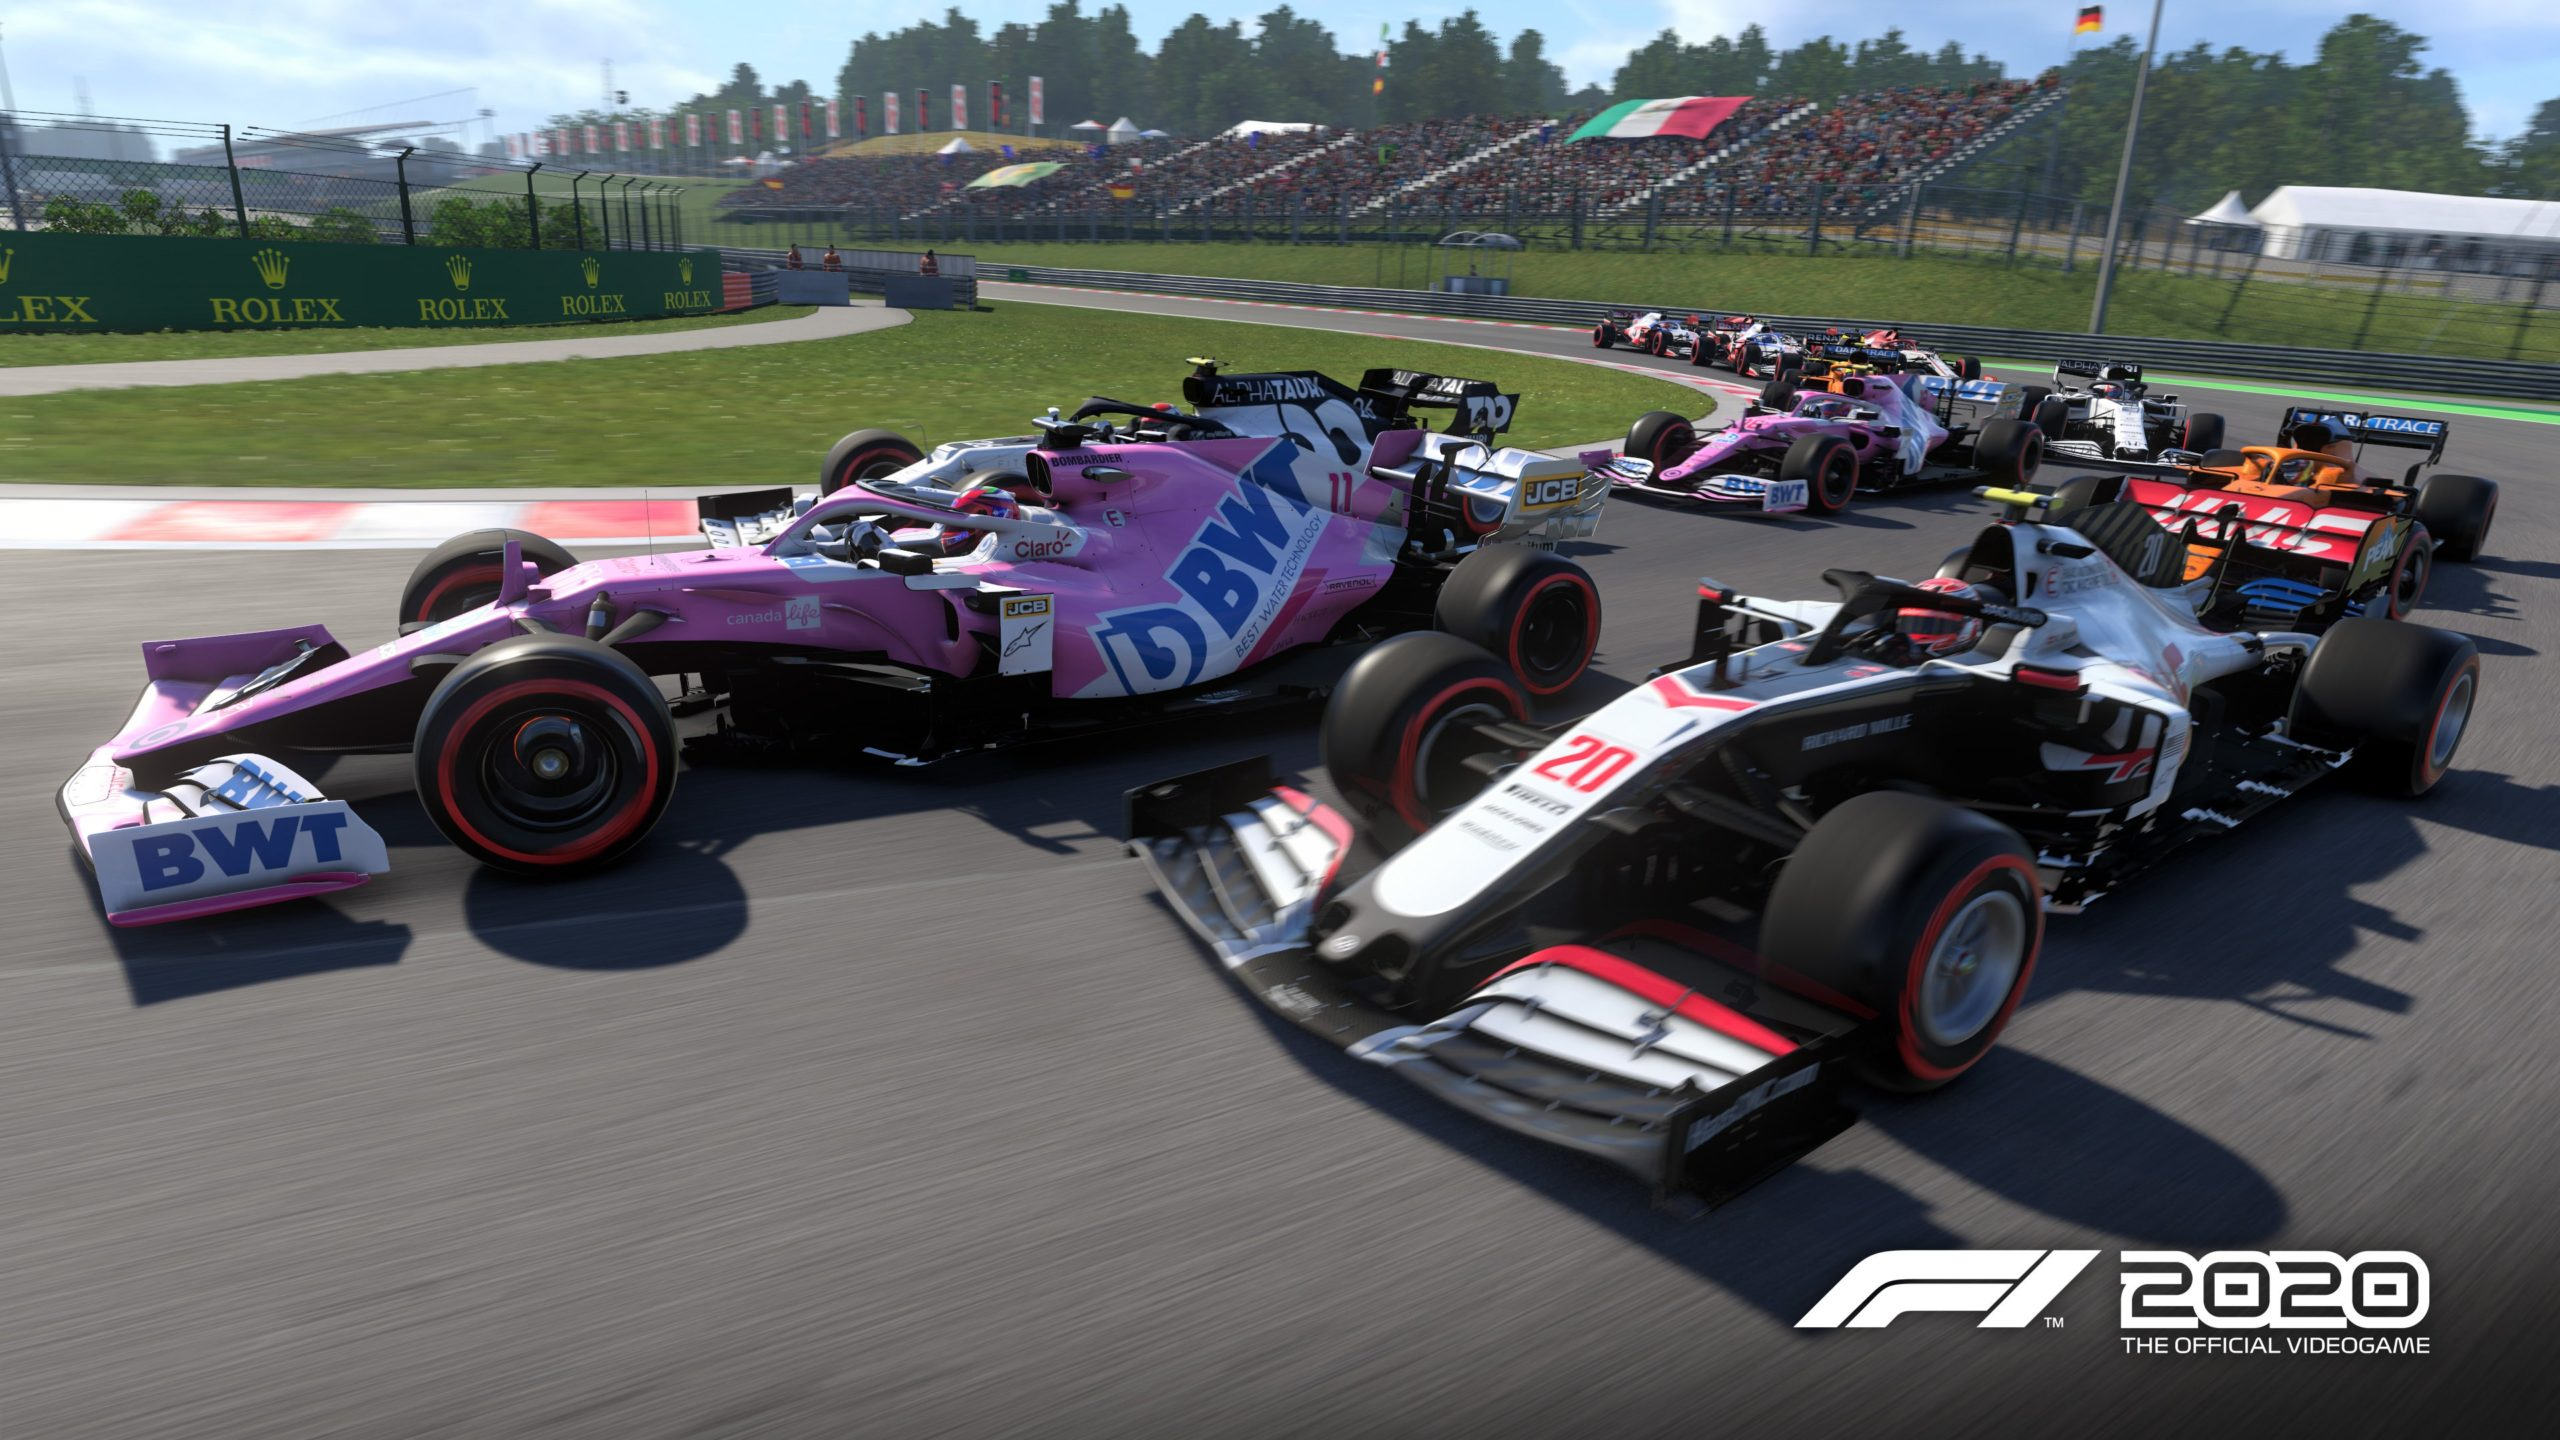 F1_2020_Hungary_Screen_01_4K-scaled F1 2020 – Plenty of New Previews